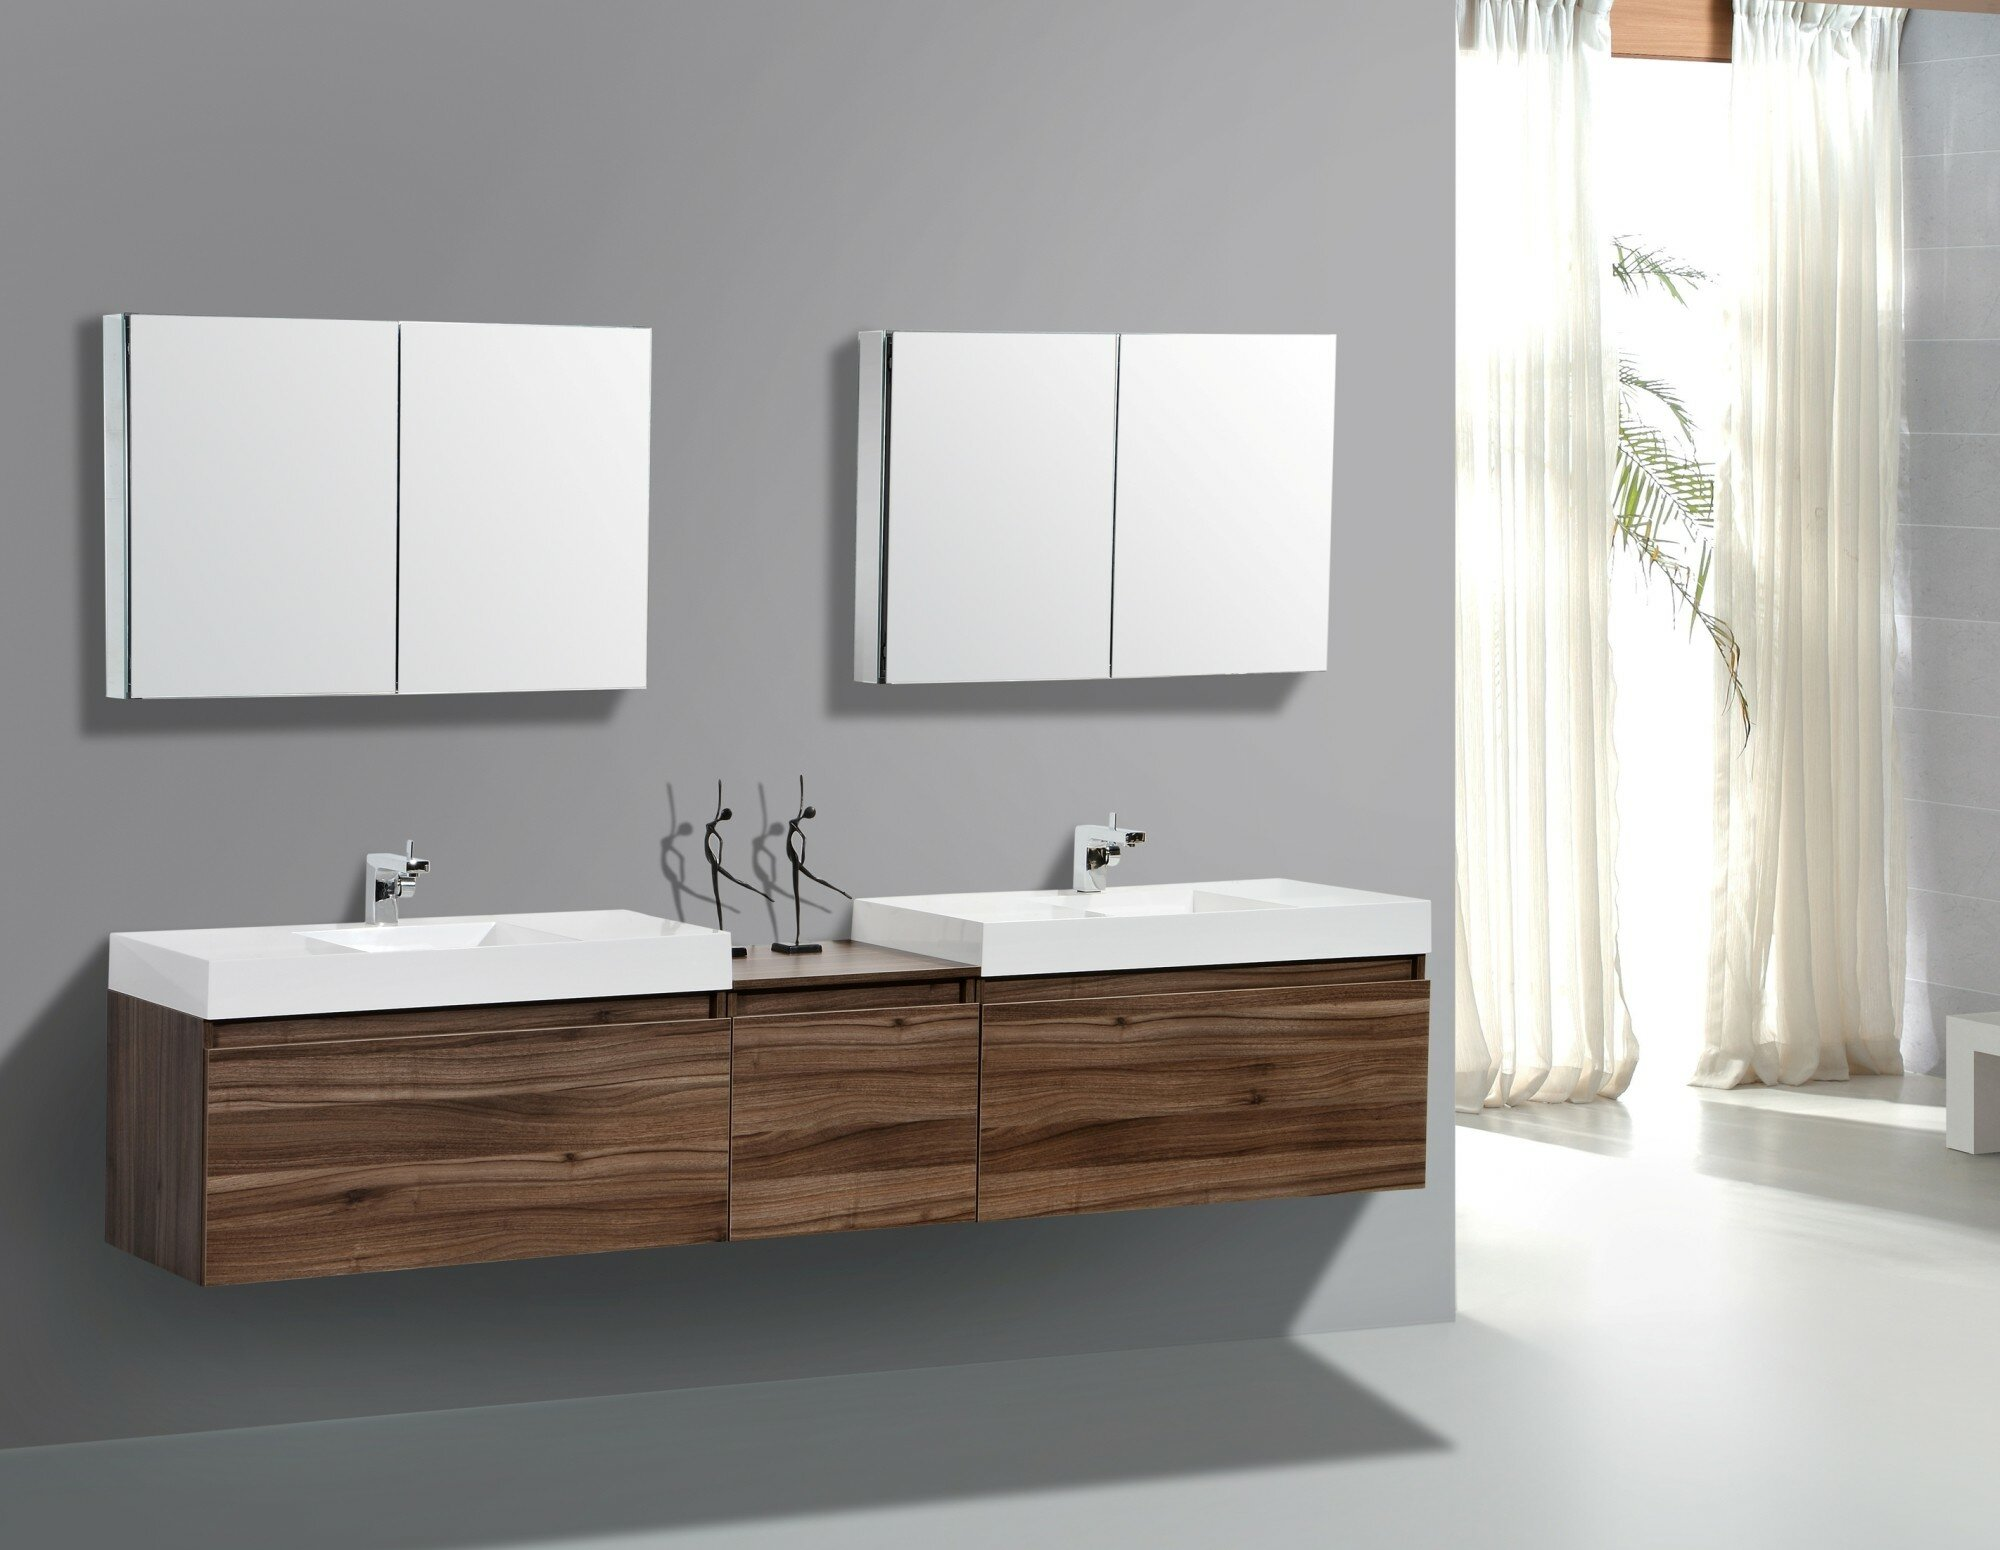 Modern Bathroom Vanities With Sinks stunning modern vanity bathroom gallery - amazing design ideas